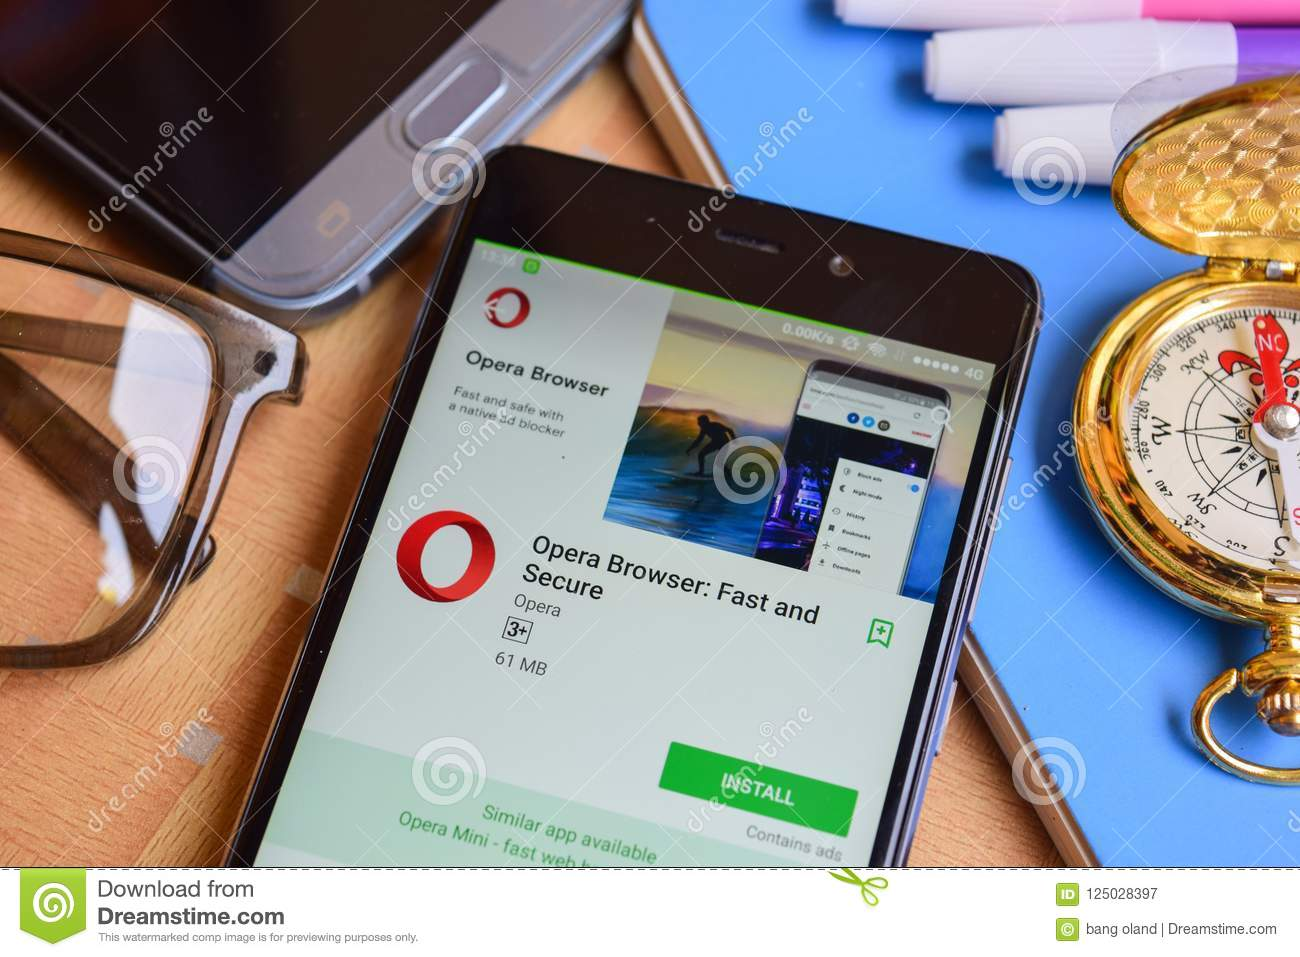 Opera Browser: Fast and Secure dev application on Smartphone screen.